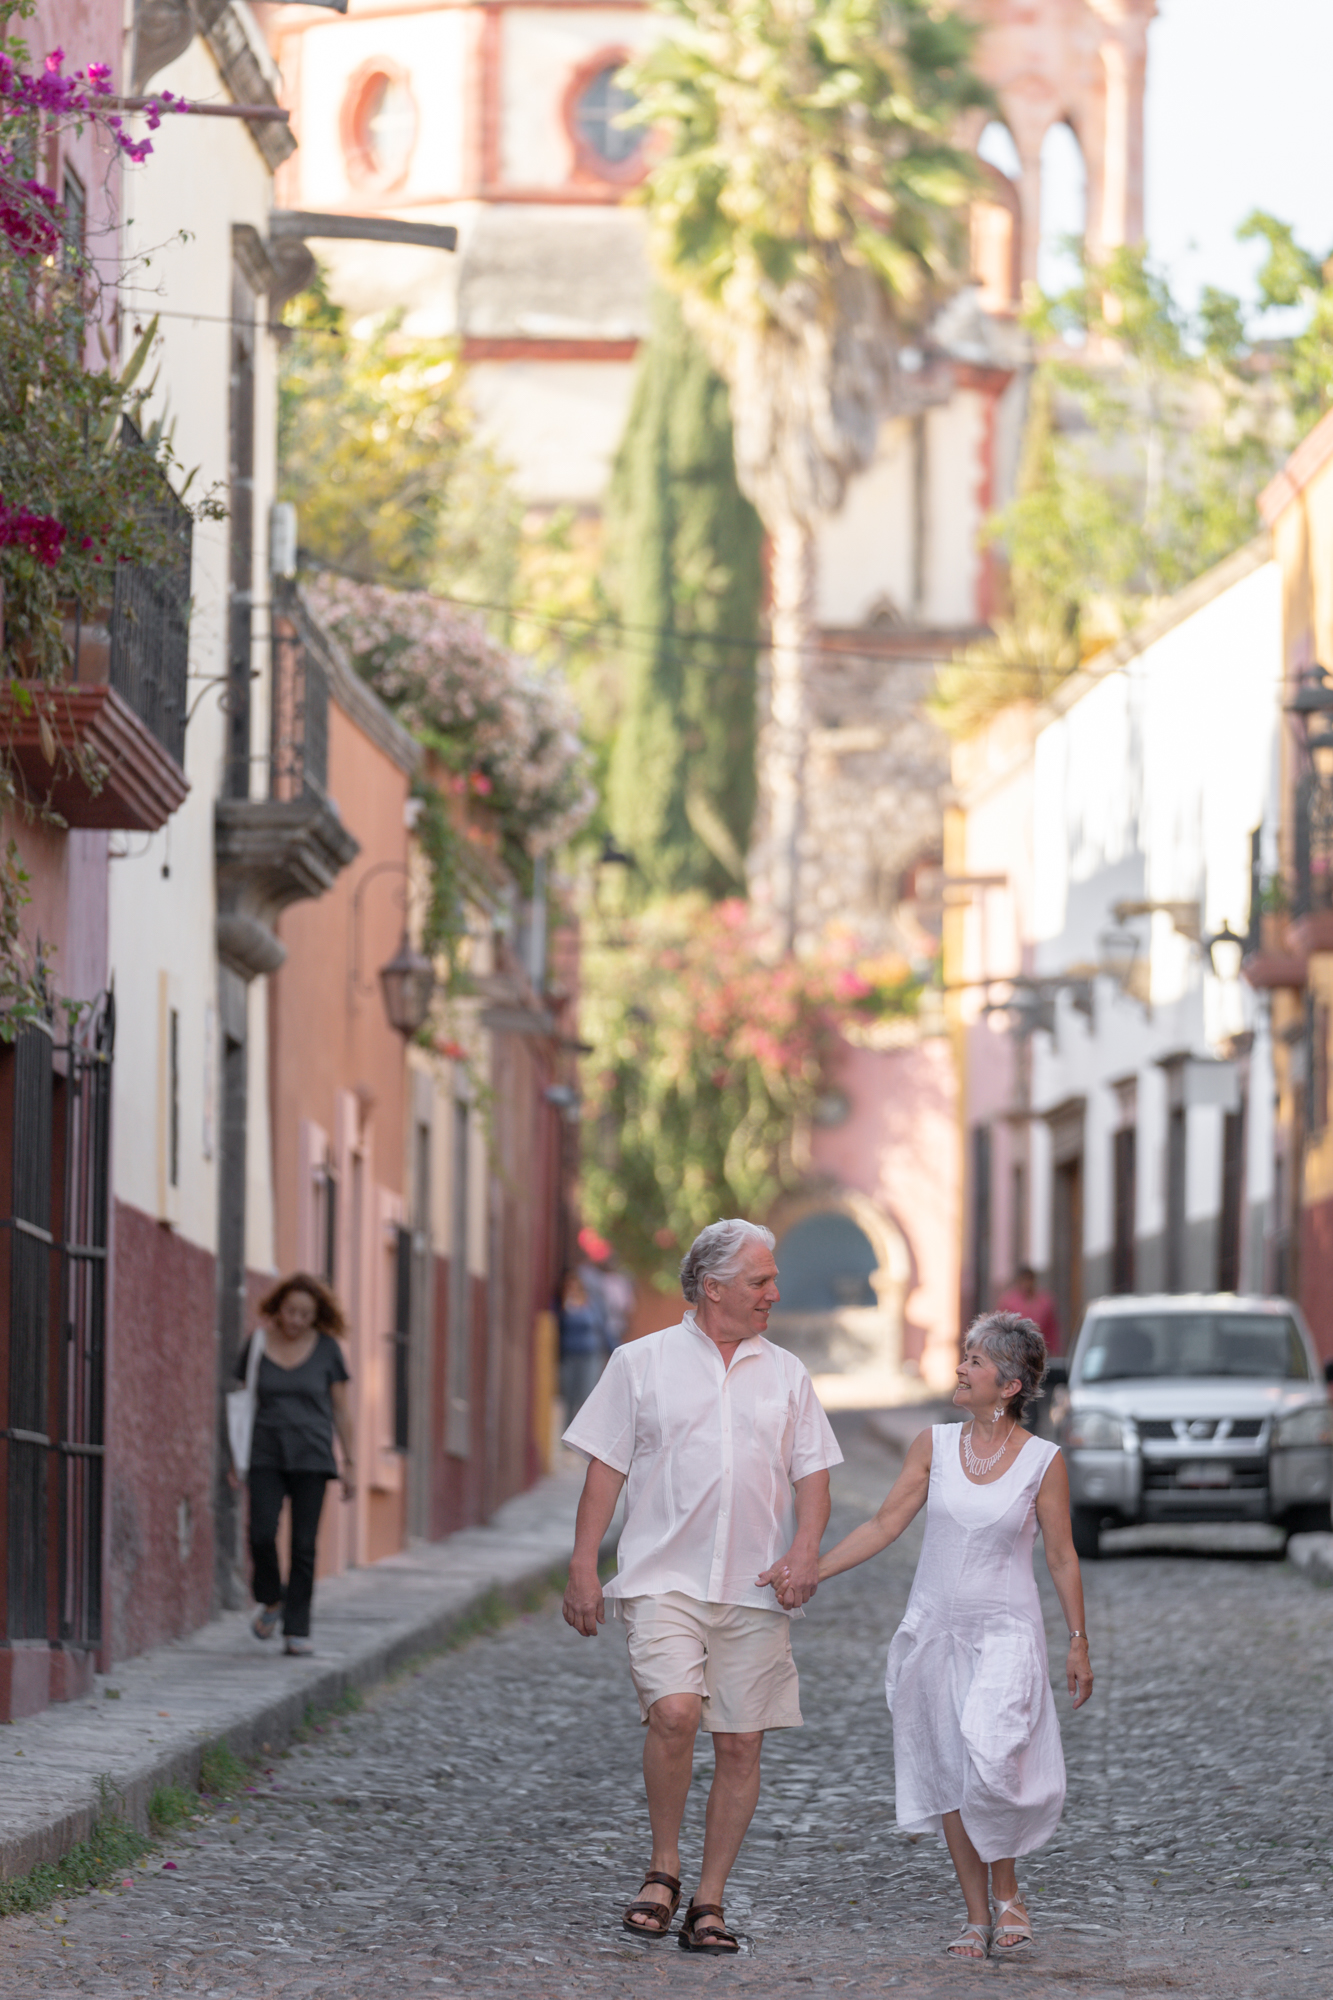 Photoshoot session in San Miguel de Allende with Suzanne and Leo-11.jpg